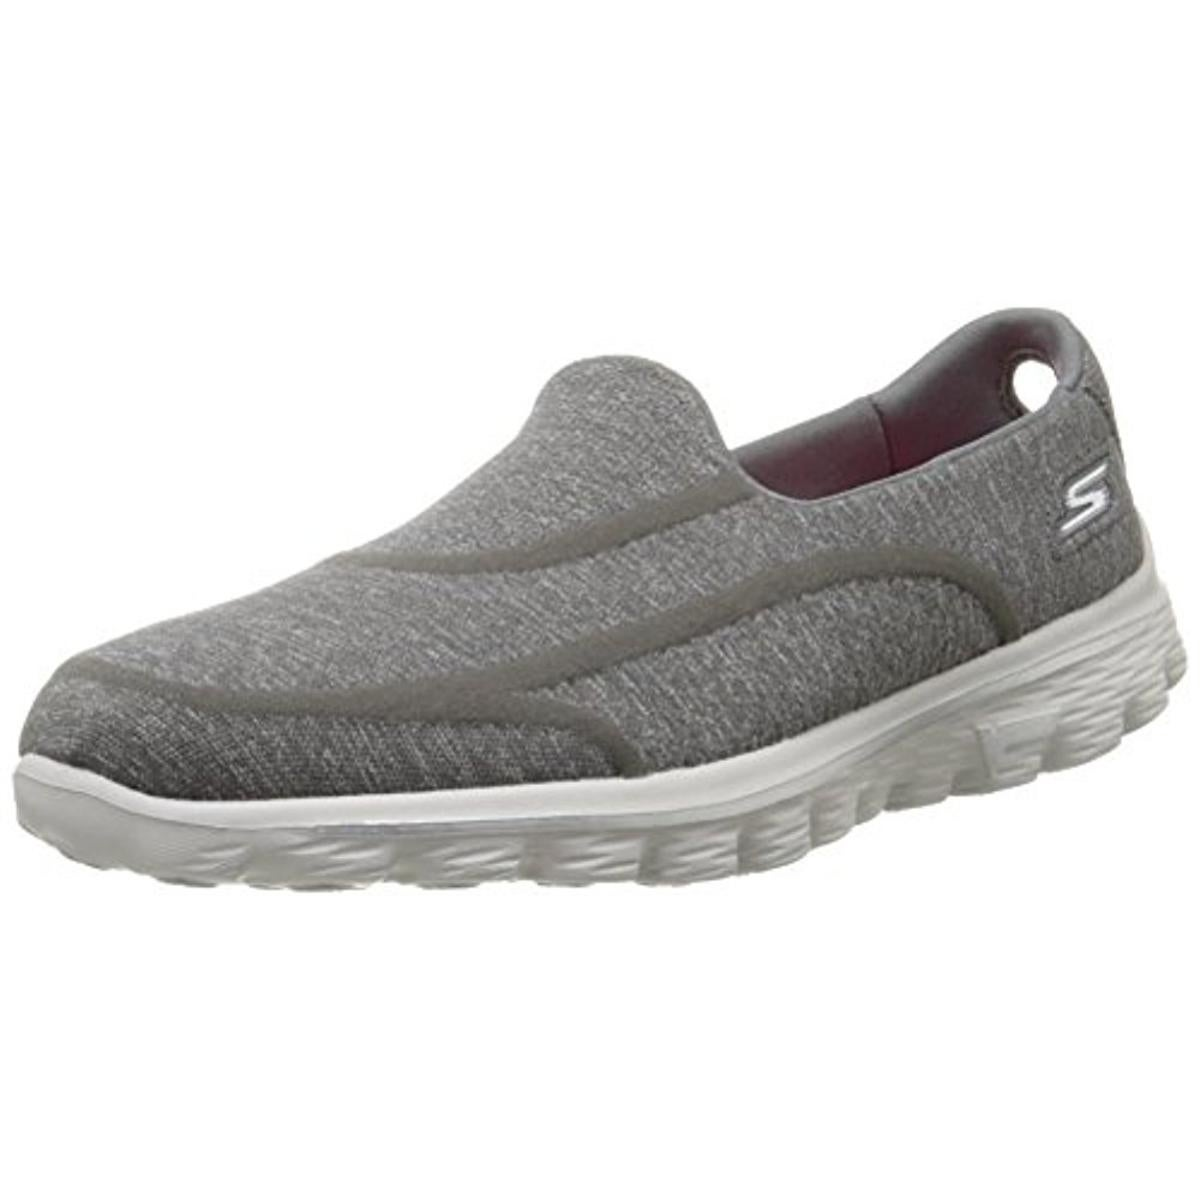 Shop Skechers Womens Go Walk 2 Super Sock 2 Walking Shoes - 6 medium (b,m) - Free Shipping On Orders Over $45 - Overstock.com - 21809278